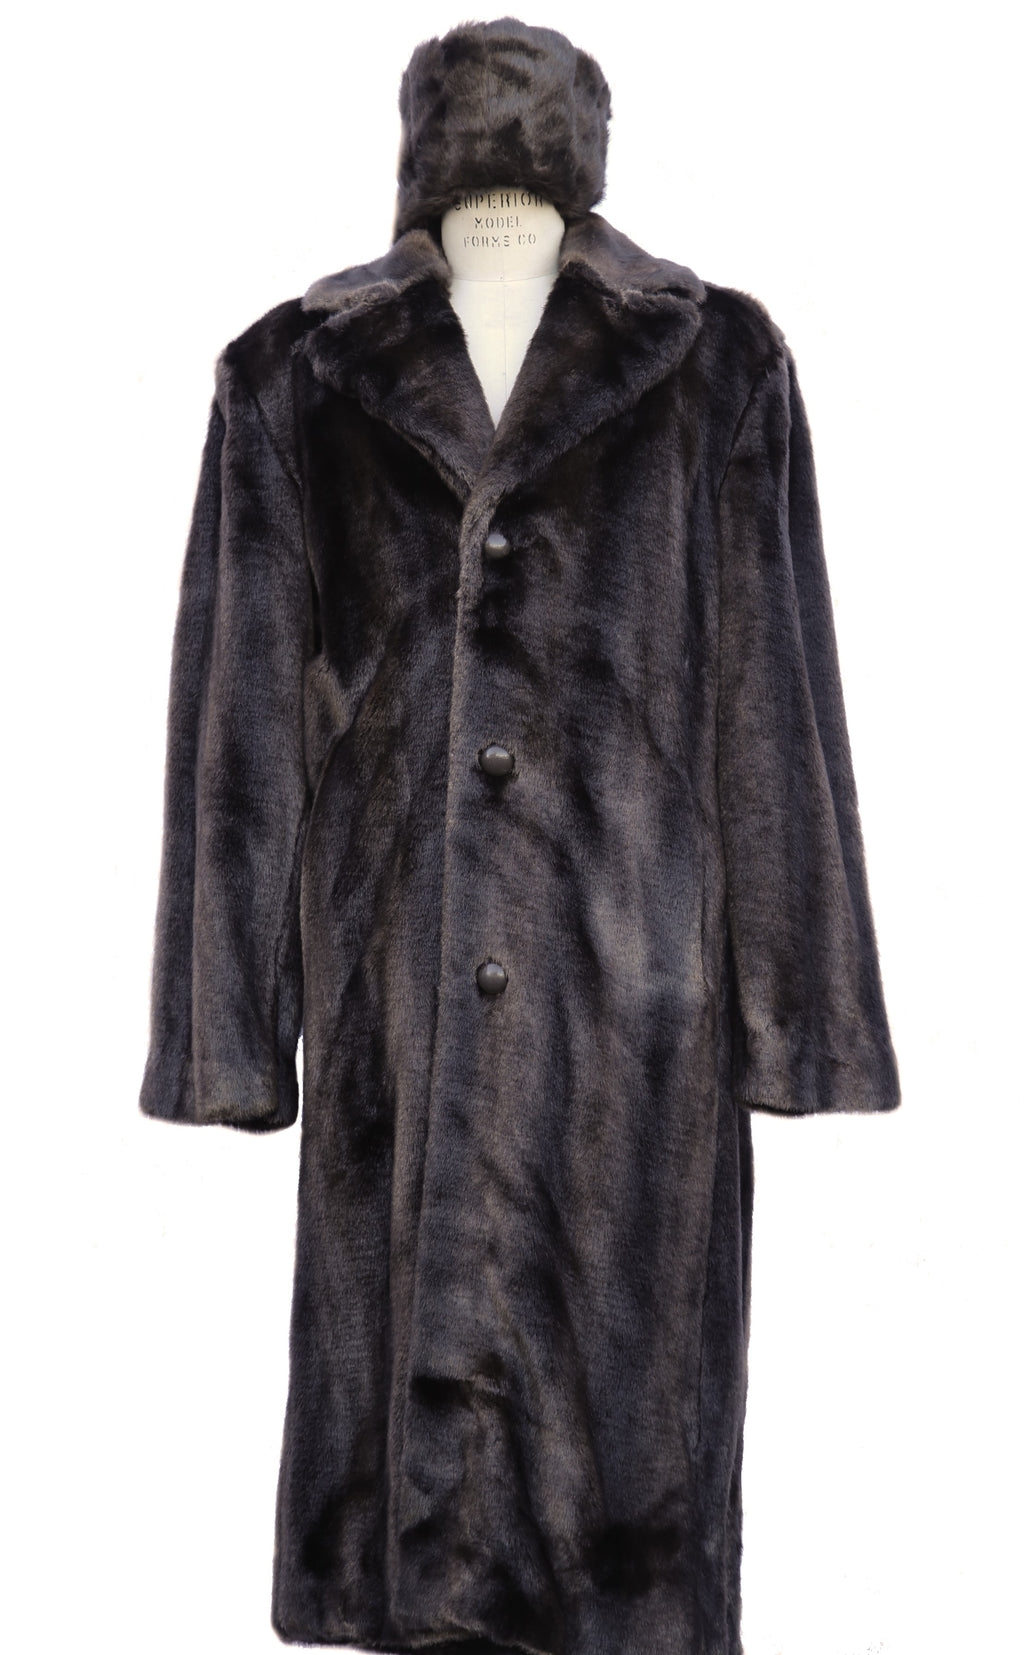 WINTER SPECIAL: FREE FUR HAT + Faux Bear Pelt Fur Coat Buttoned 1pc Long Zoot Suit - Brown